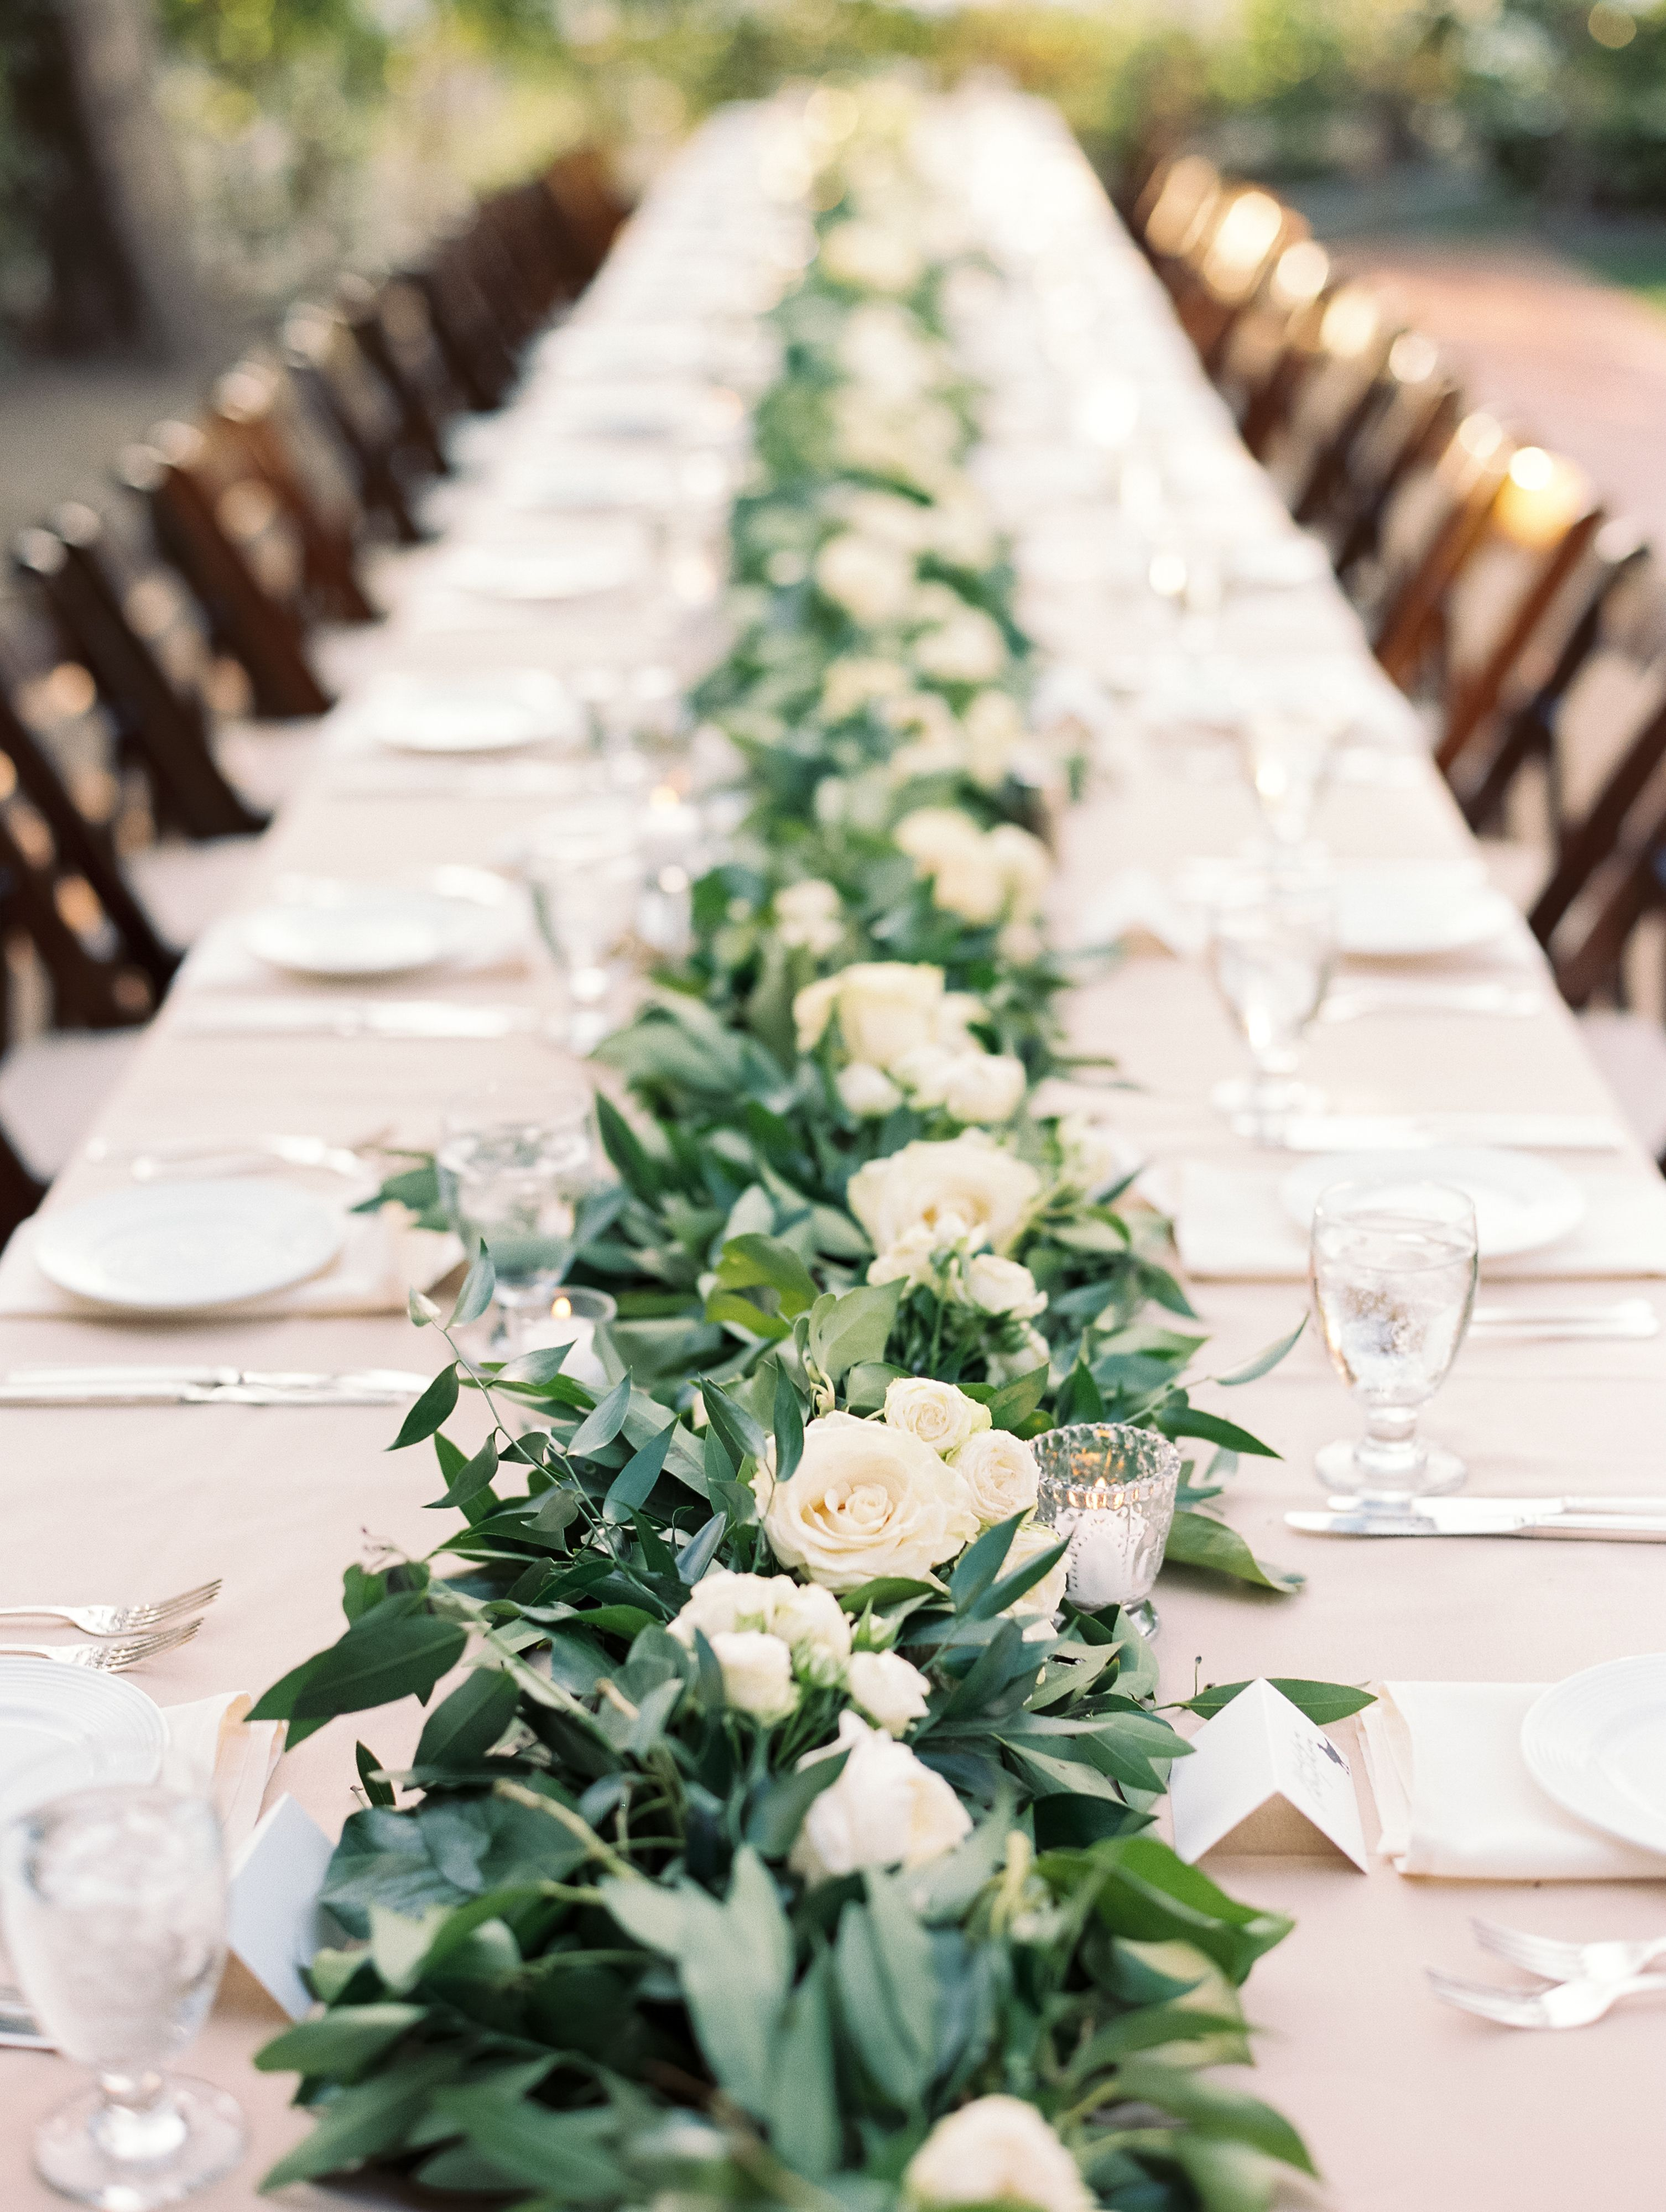 Garland And White Rose Table Runner Centerpiece Taralynn Lawton Photography Wedding Table Flowers Vintage Wedding Table White Roses Wedding